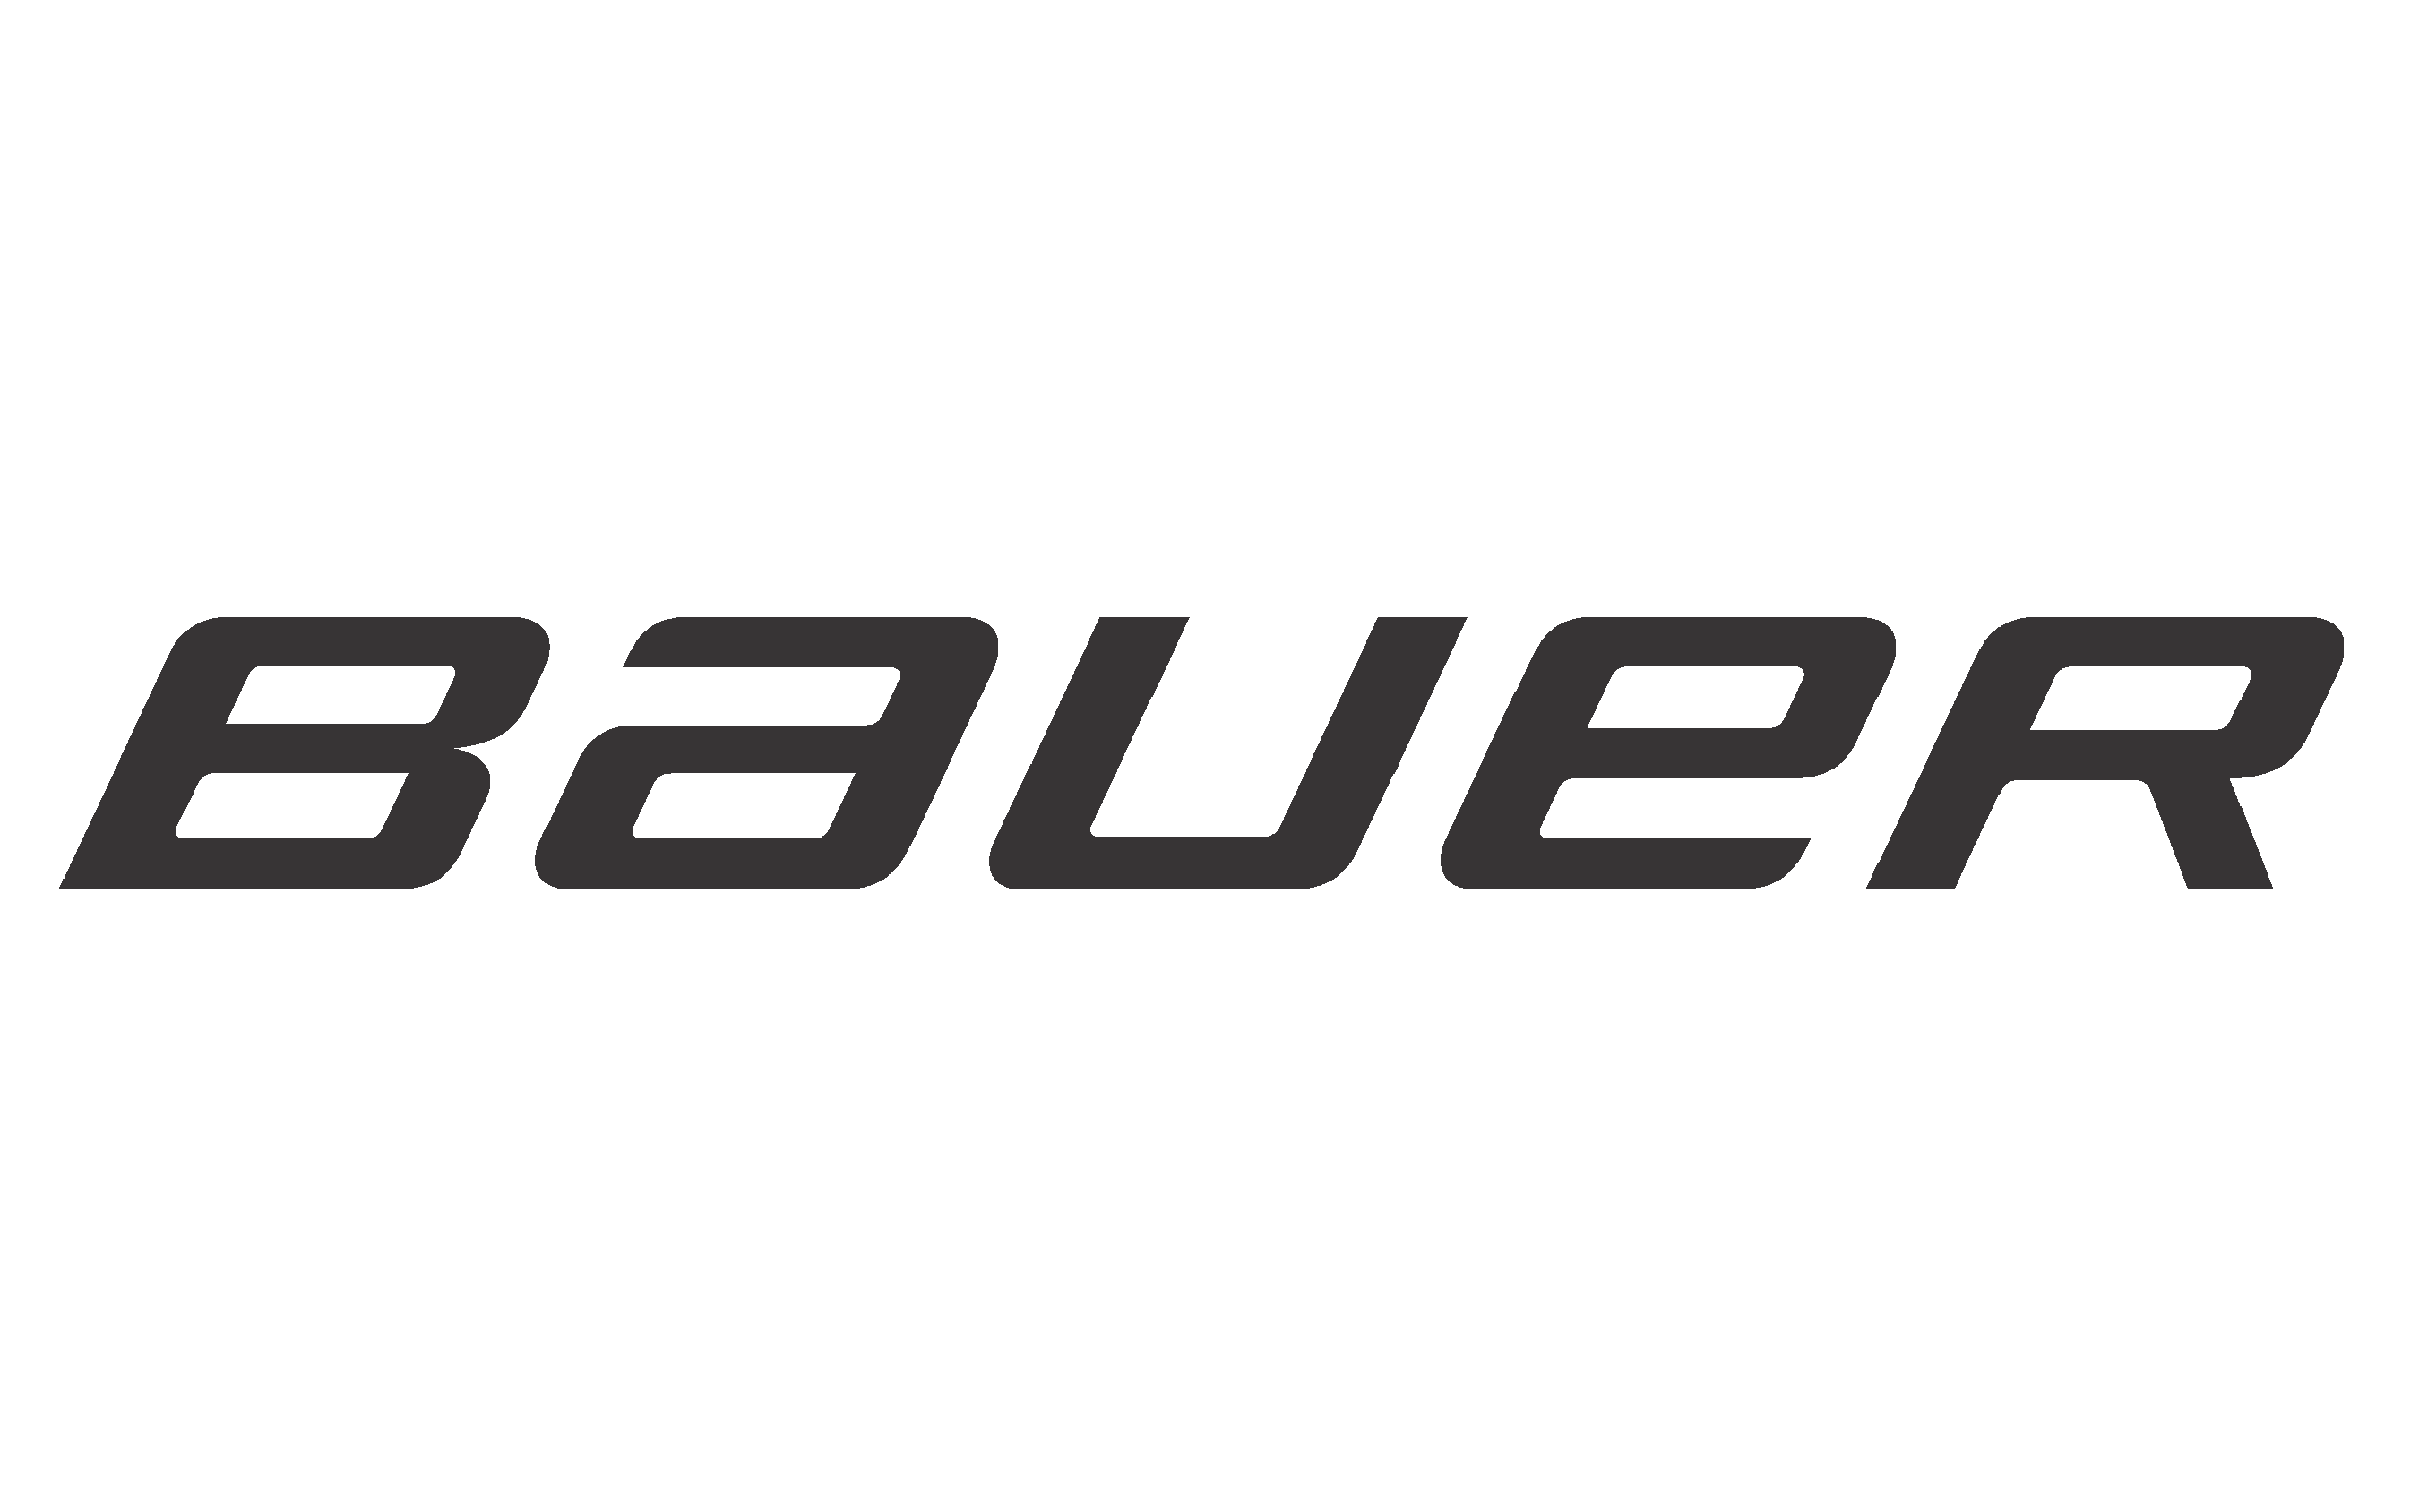 Bauer logo and symbol, meaning, history, PNG